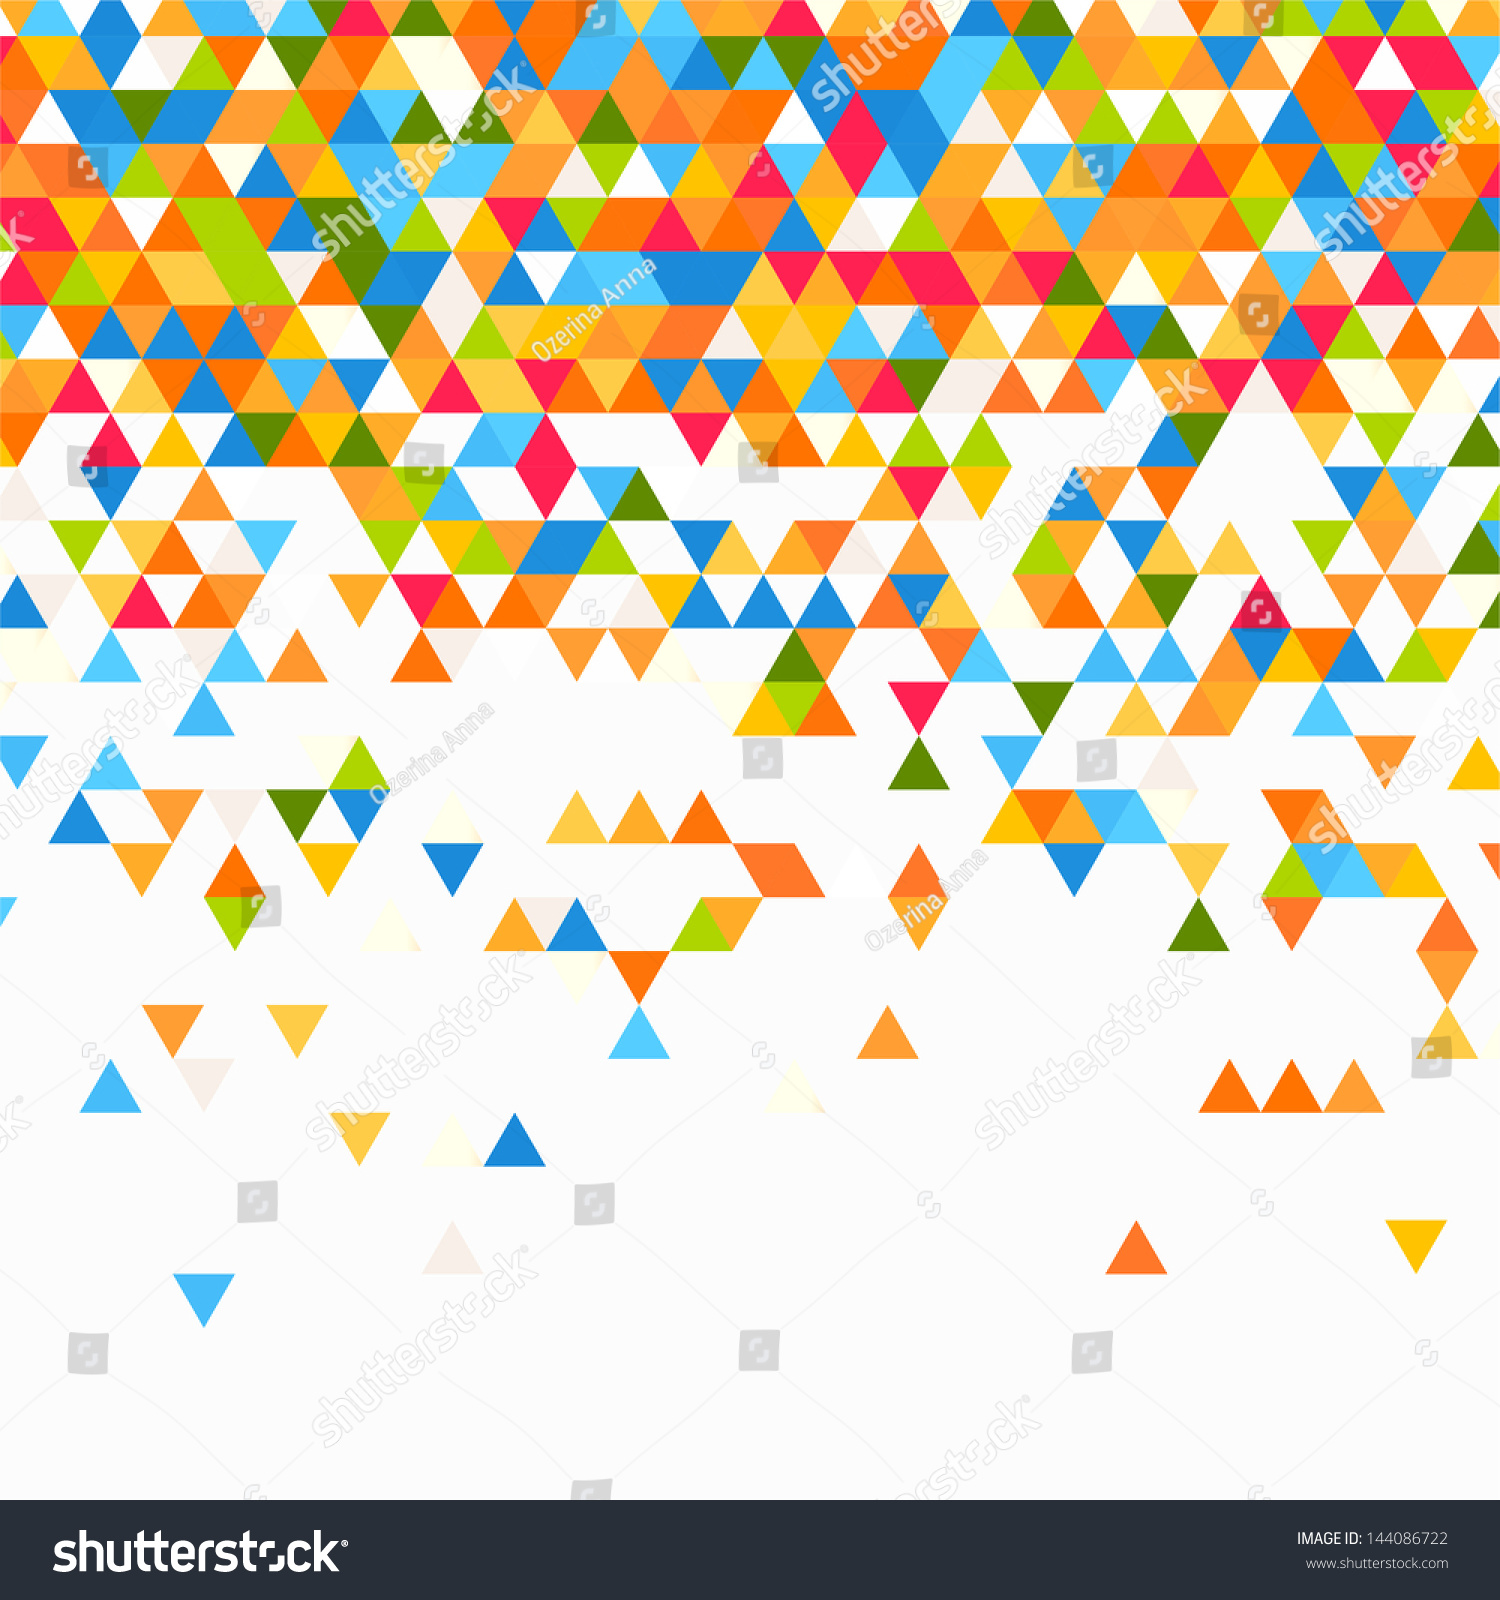 stock vector geometric background - photo #3